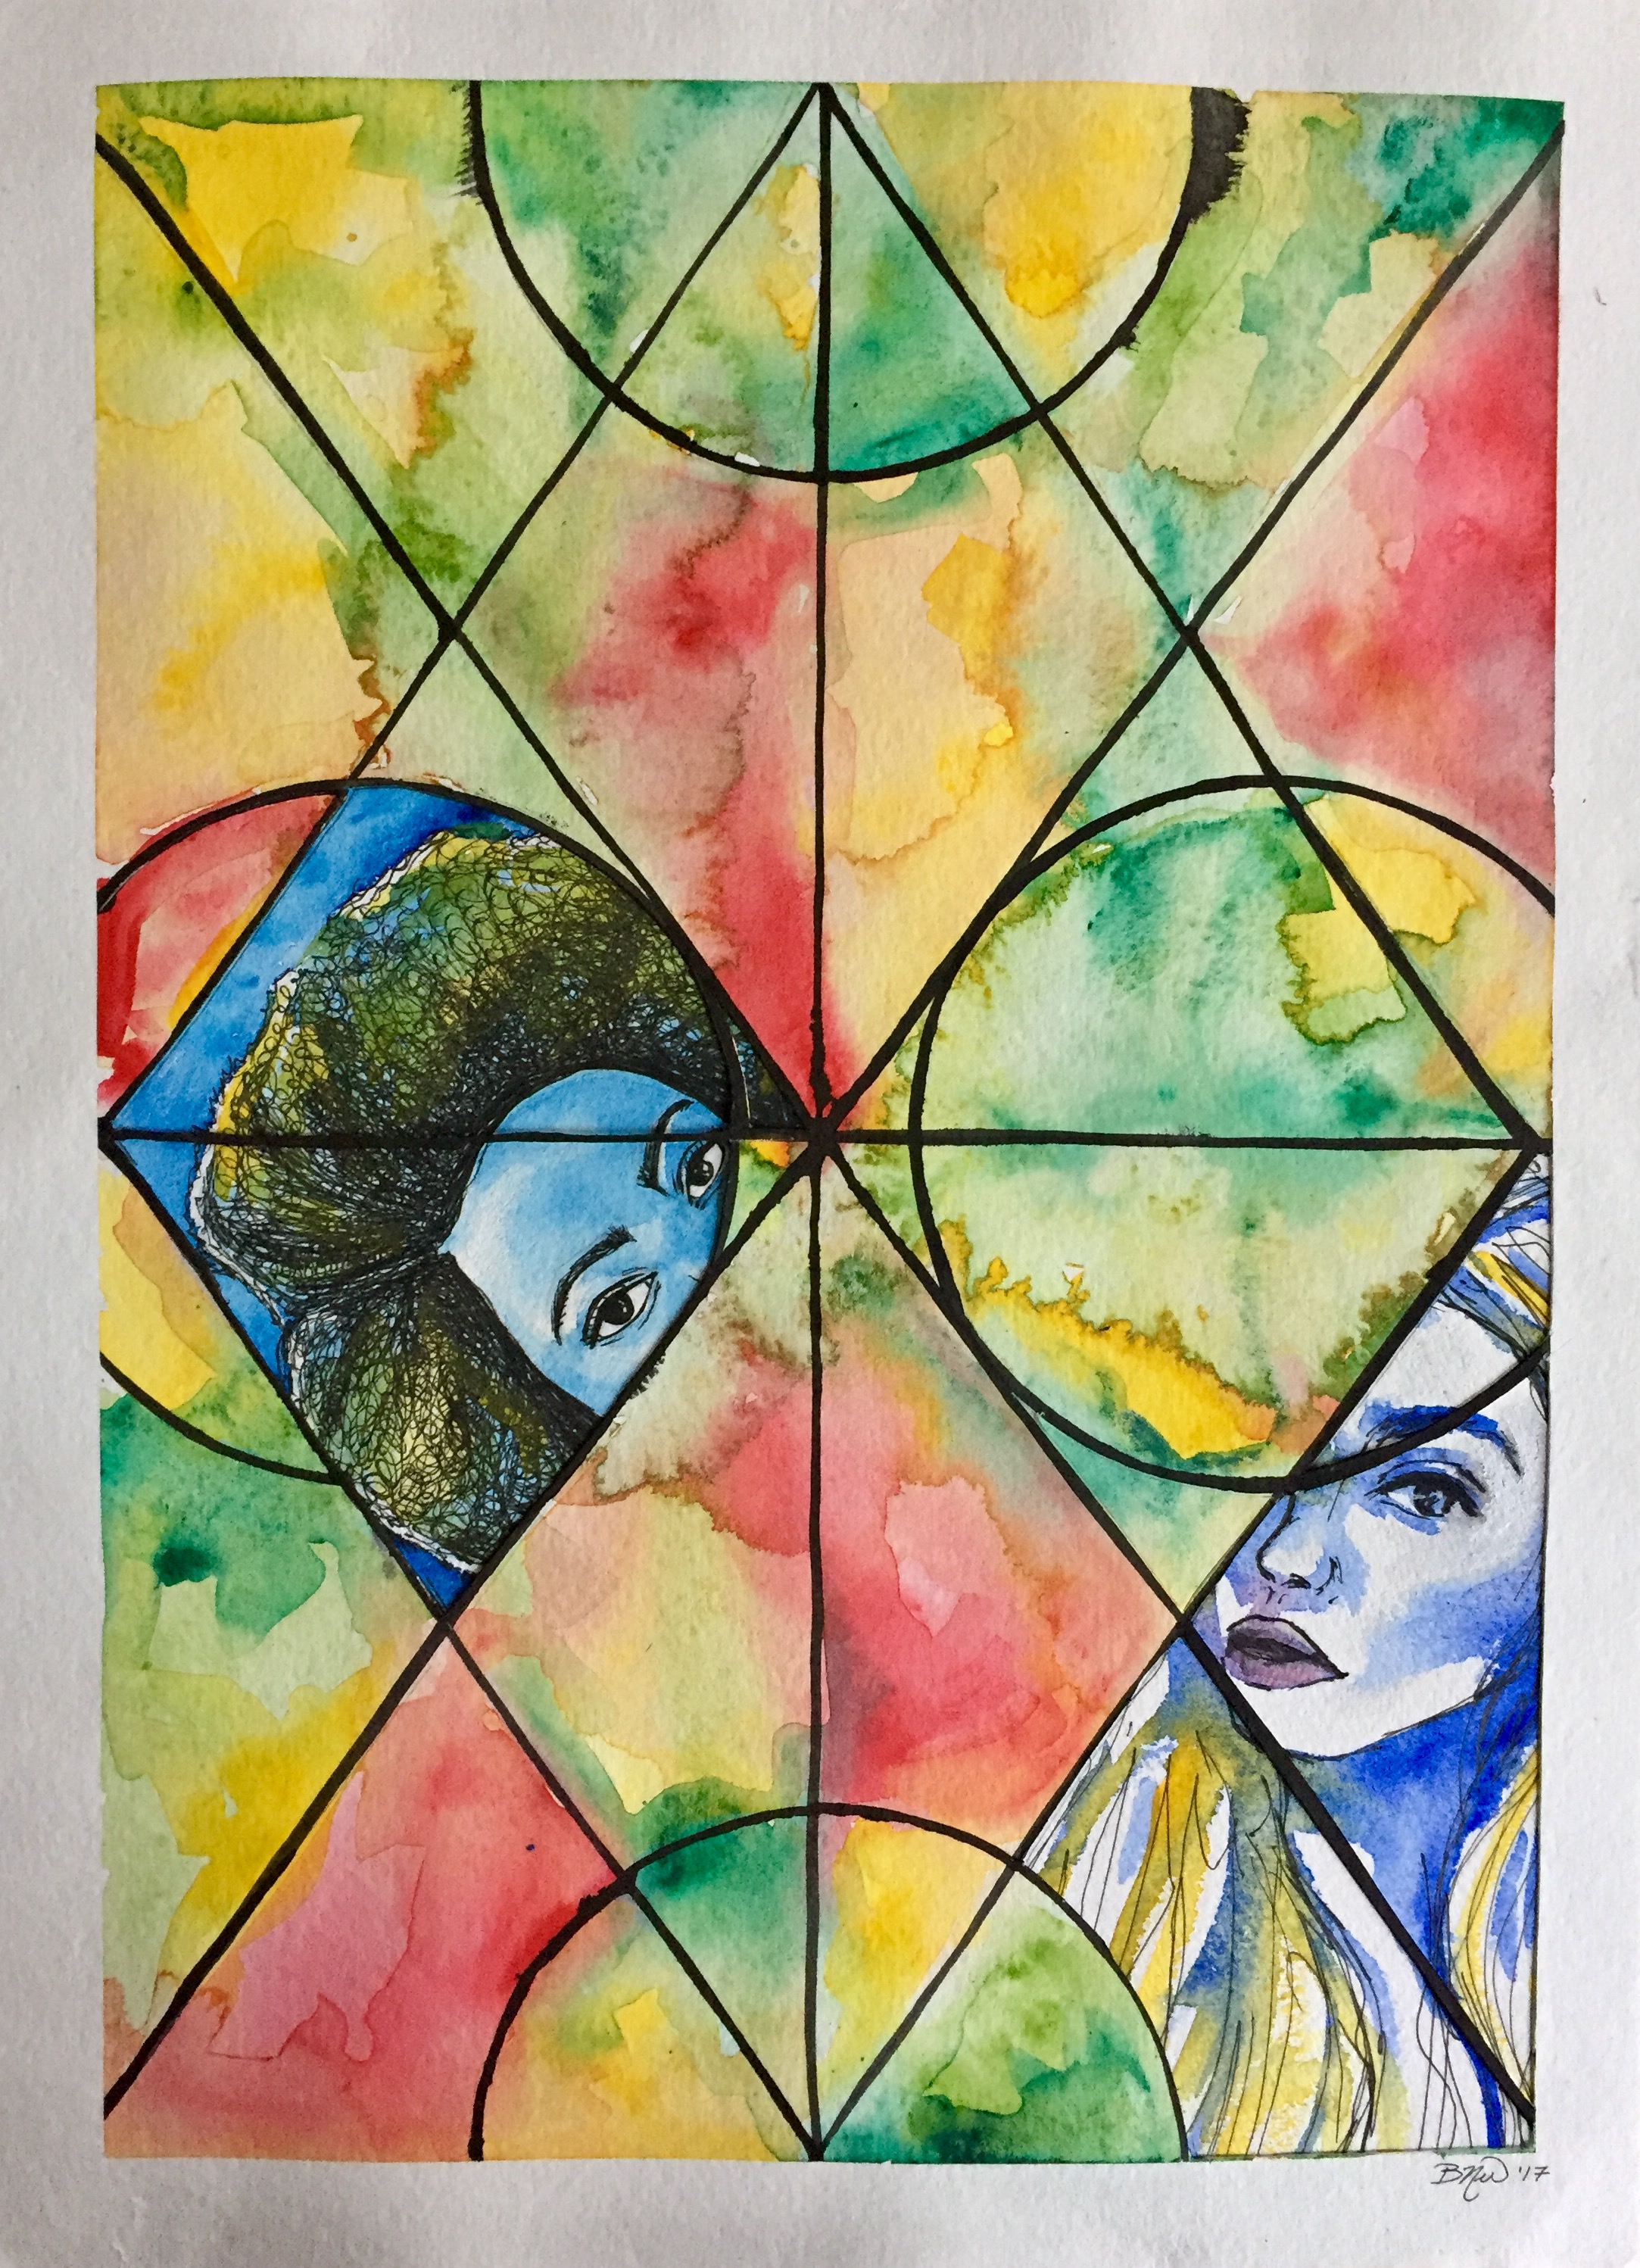 Glass Prism II   2017. Watercolor and ink collage on paper. 11 x 15.  $100 -  SOLD